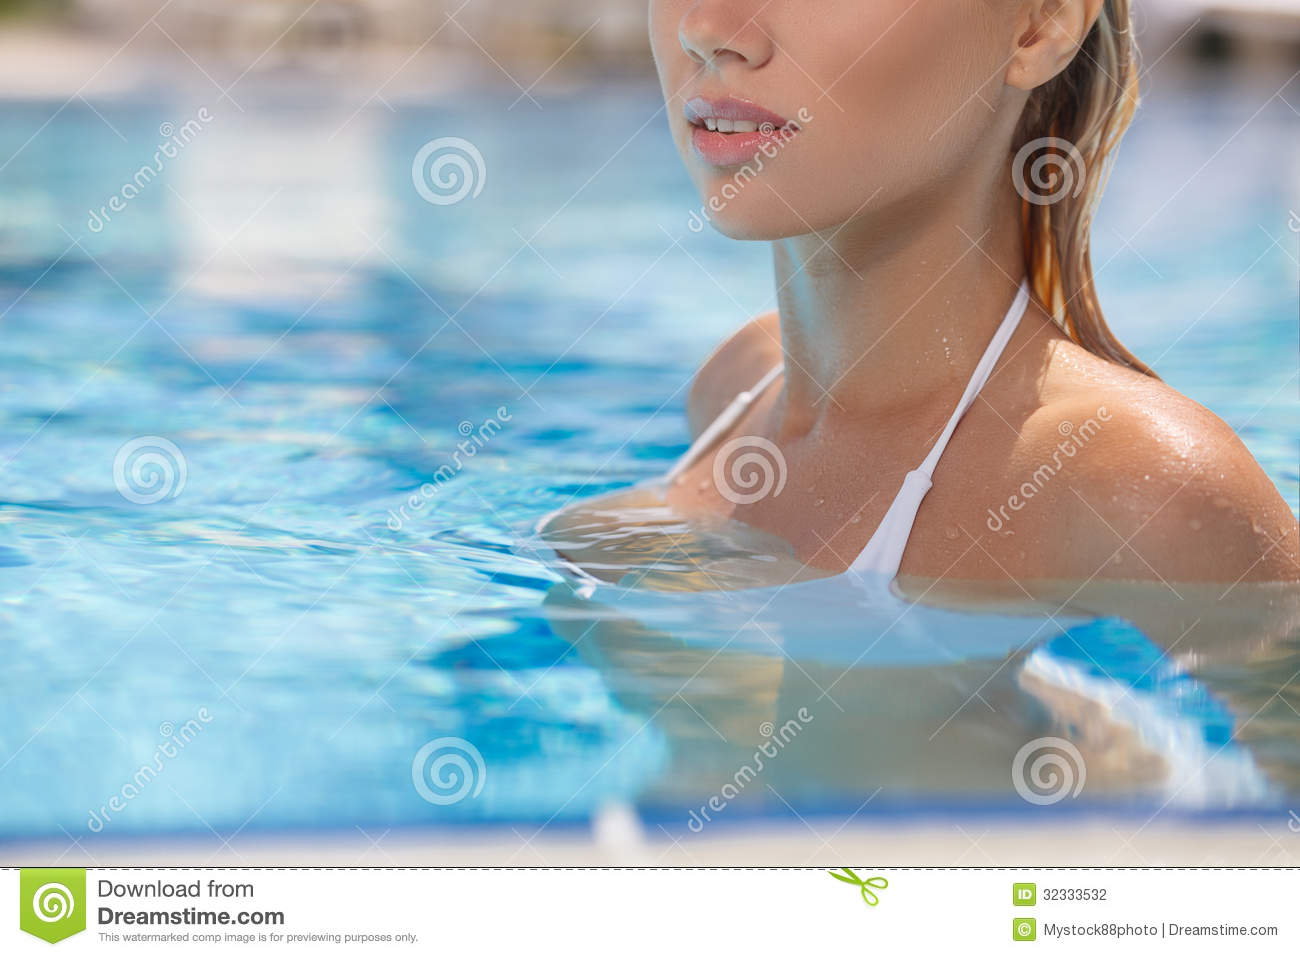 Beauty In Swimming Pool. Cropped Image Of Beautiful Young Women Stock Photography - Image: 32333532